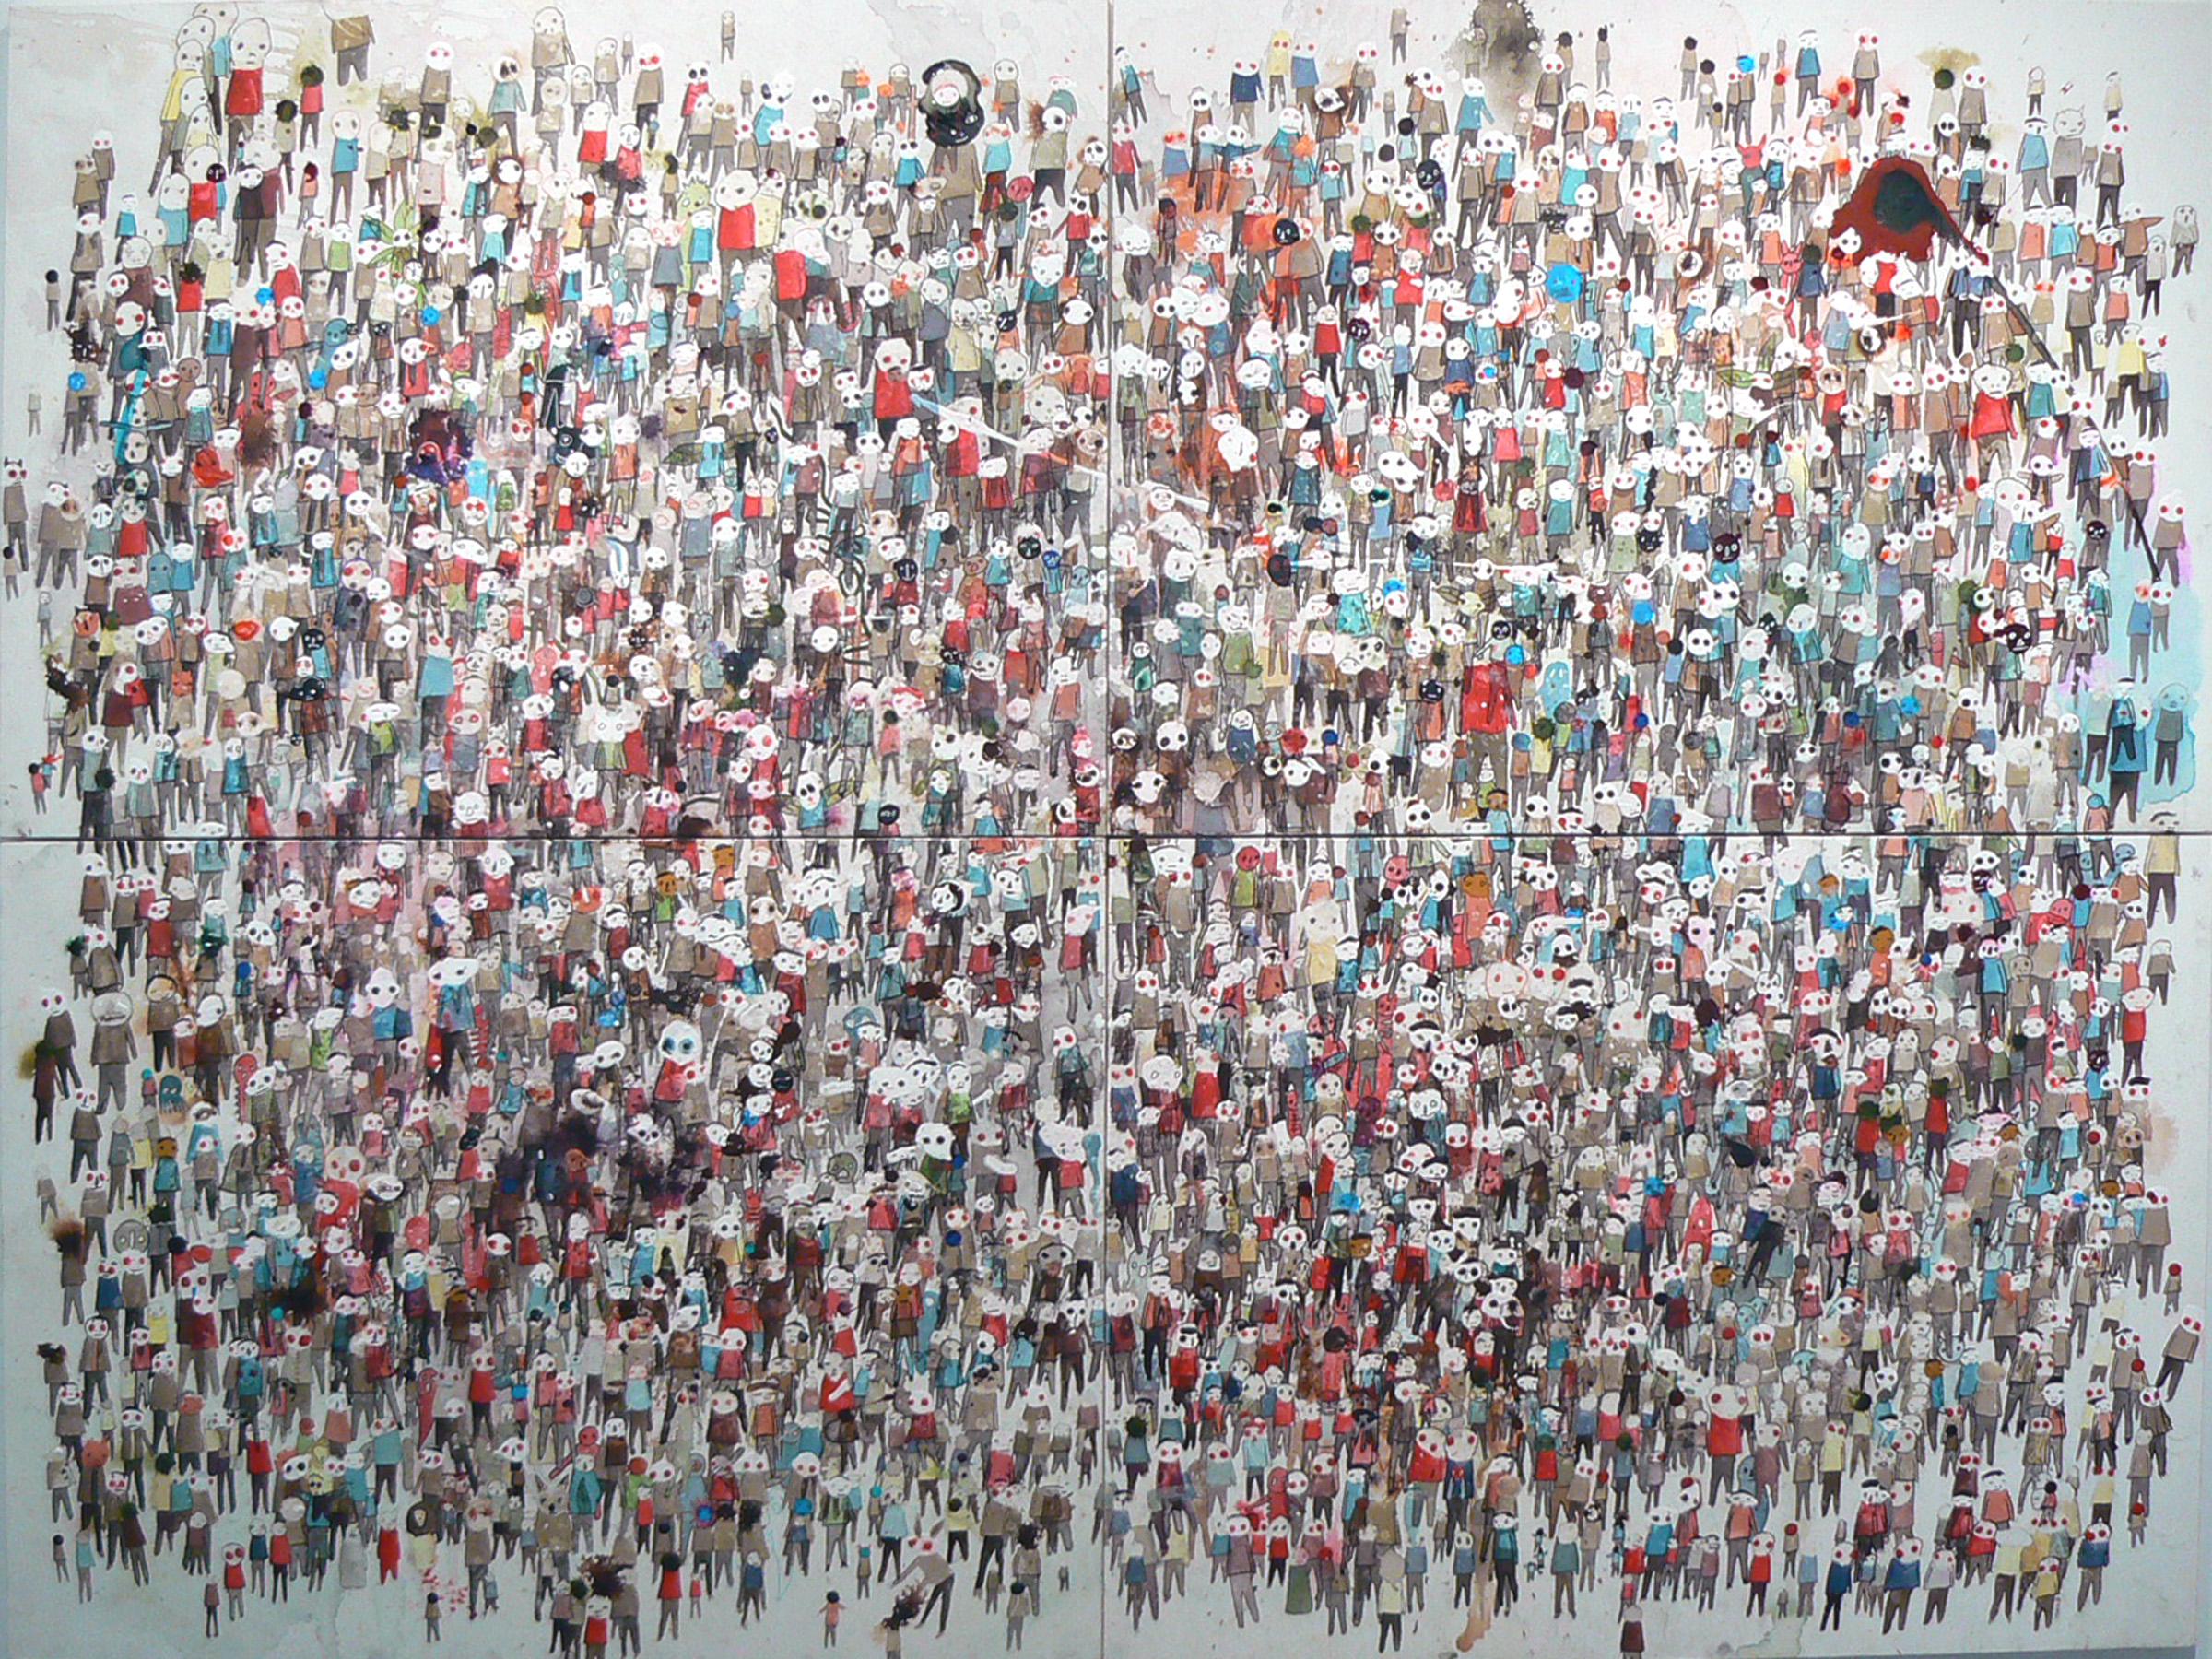 Neil Farber, New Faces , 2010-2011, Mixed media on panels, 60h x 80w in.